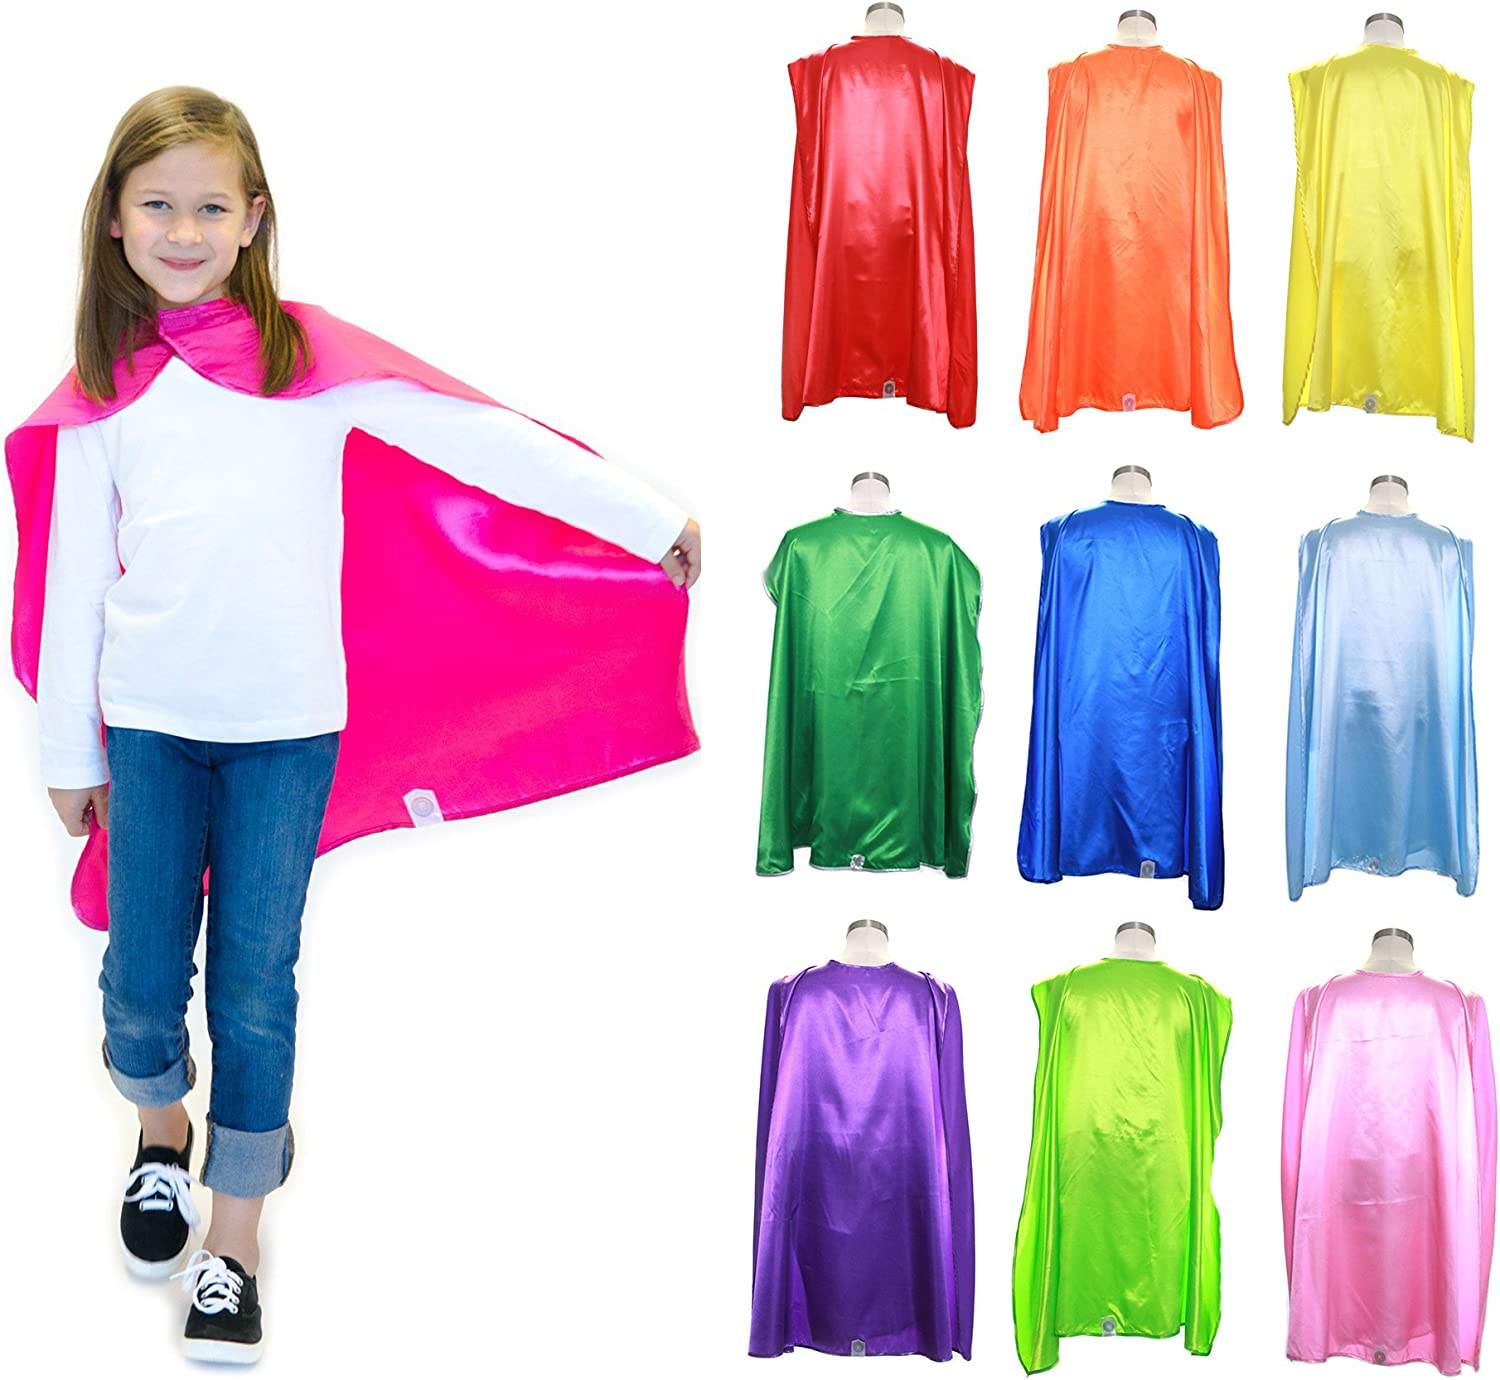 Everfan Youth Superhero Cape Party Pack   Set of 10 Polyester Satin Capes   Bulk Super Hero Cape  Kids